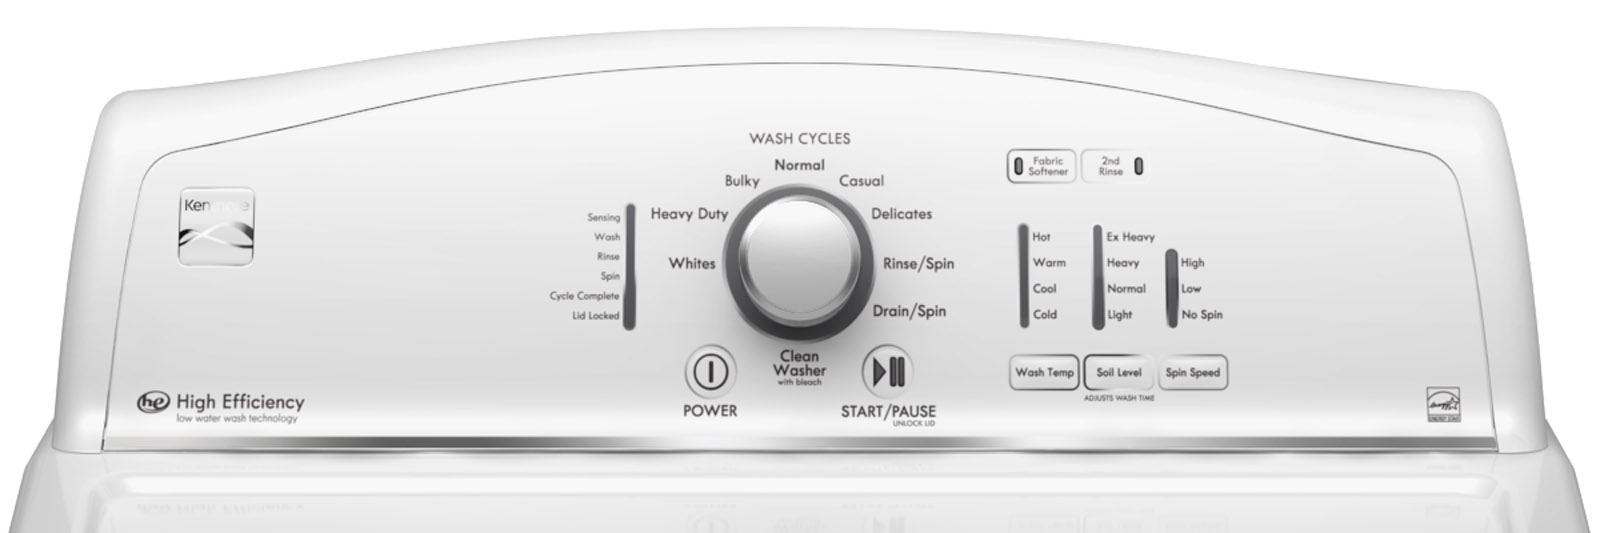 Kenmore 3.6 cu. ft. High-Efficiency Top-Load Washer